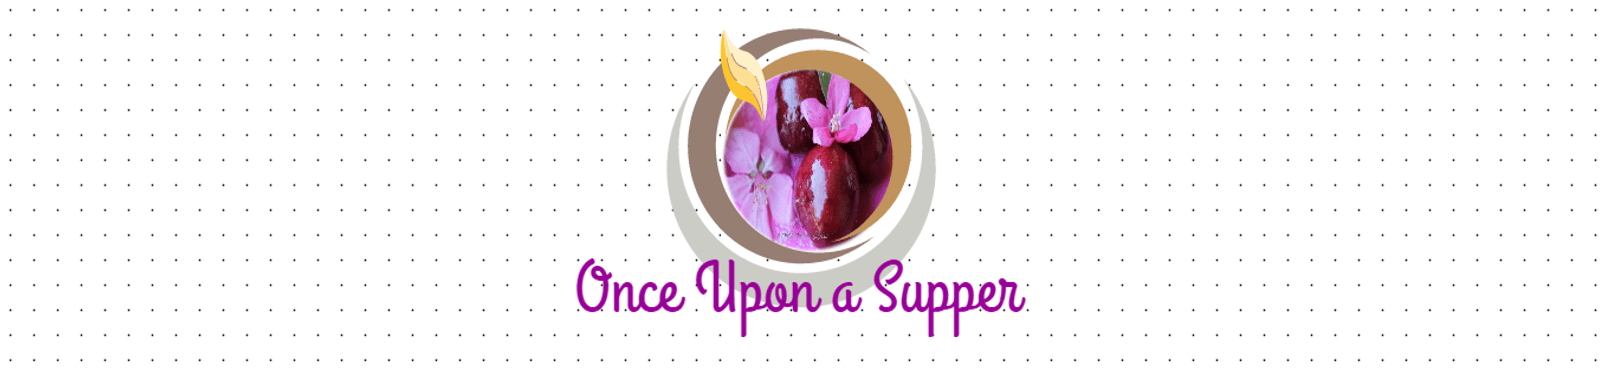 Once Upon A Supper